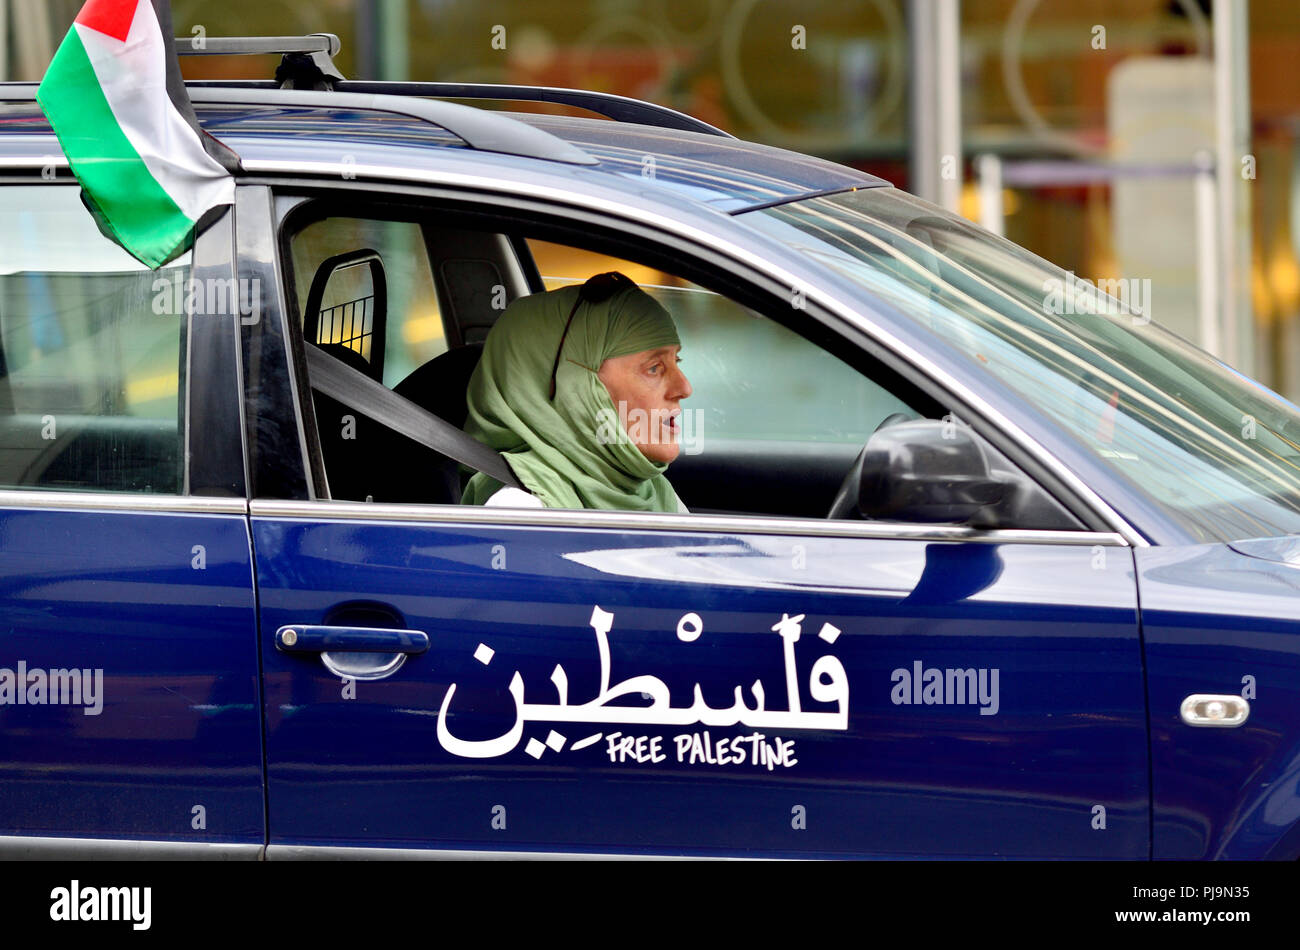 Woman wearing a headscarf driving a car with a Palestinian flag and 'Free Palestine' printed on the door, central London, England, UK. 2018 - Stock Image